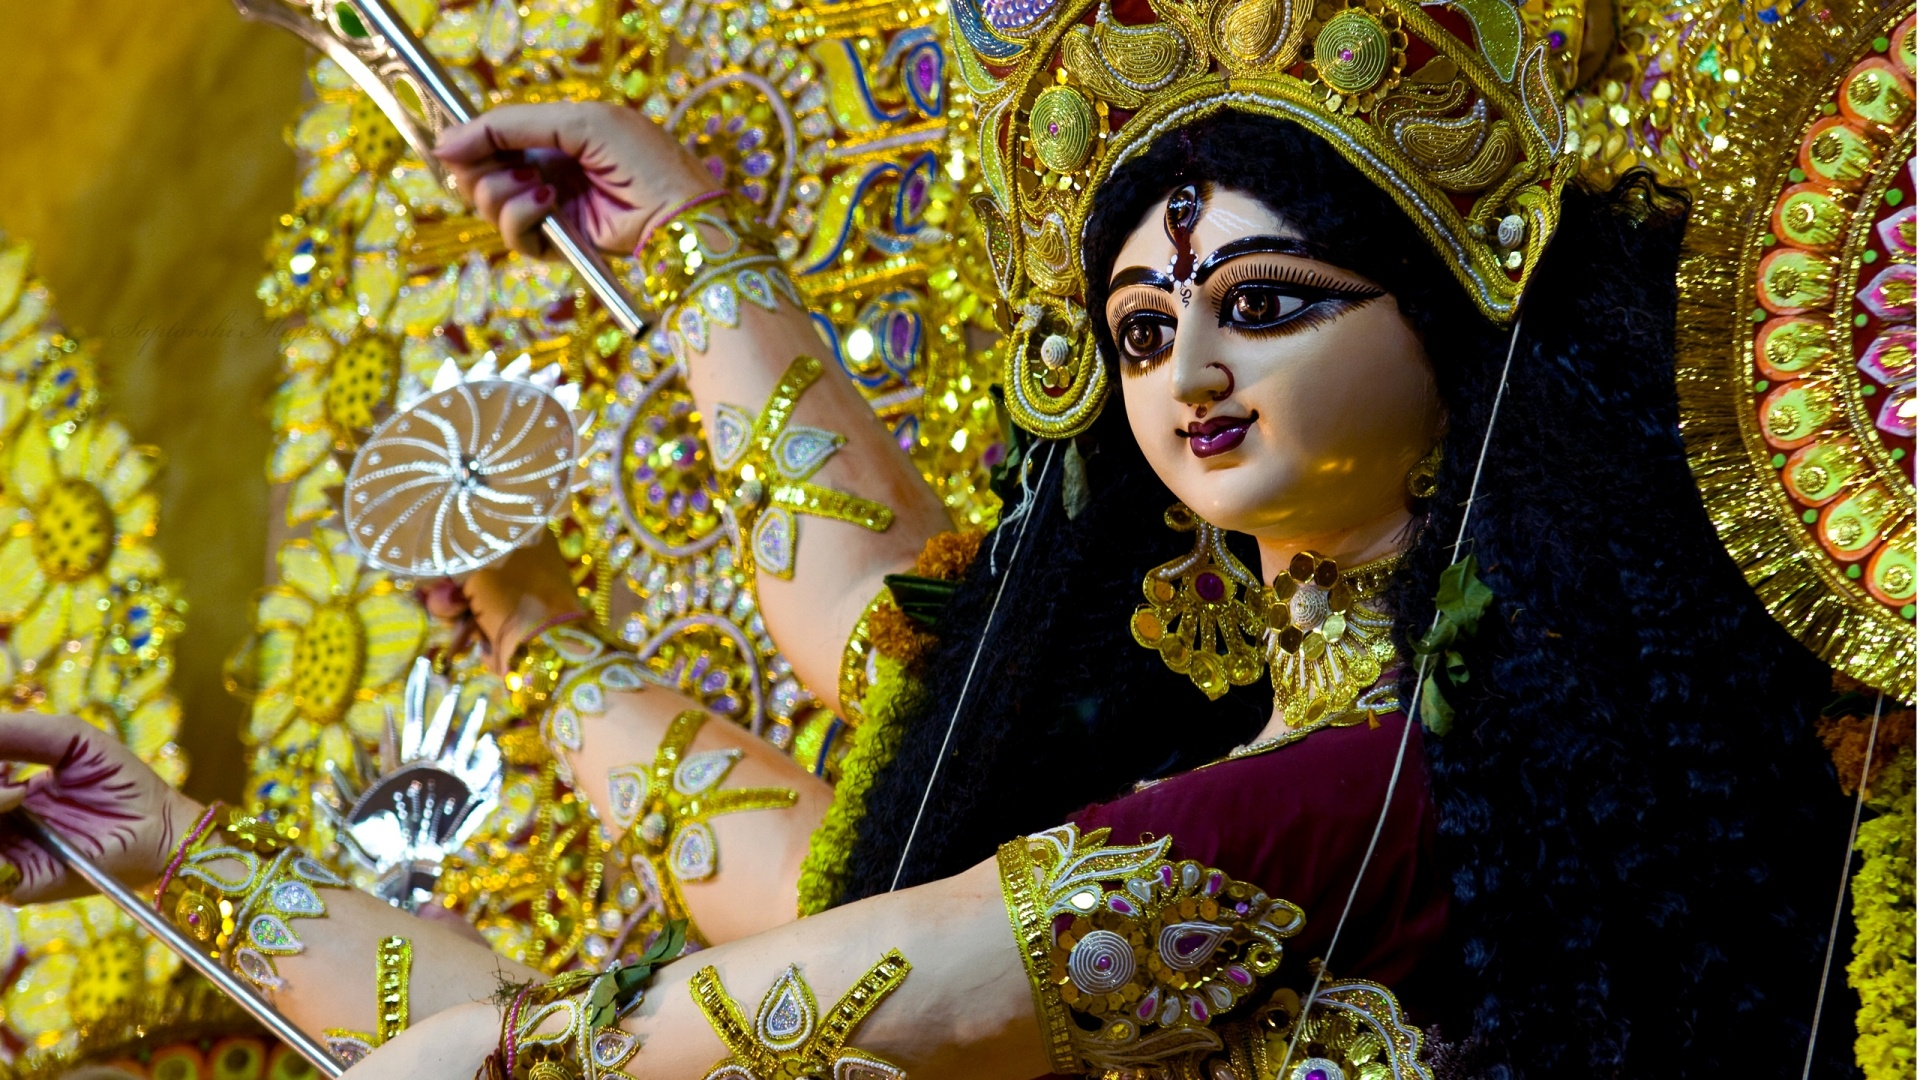 Wallpaper download durga maa - Maa Durga